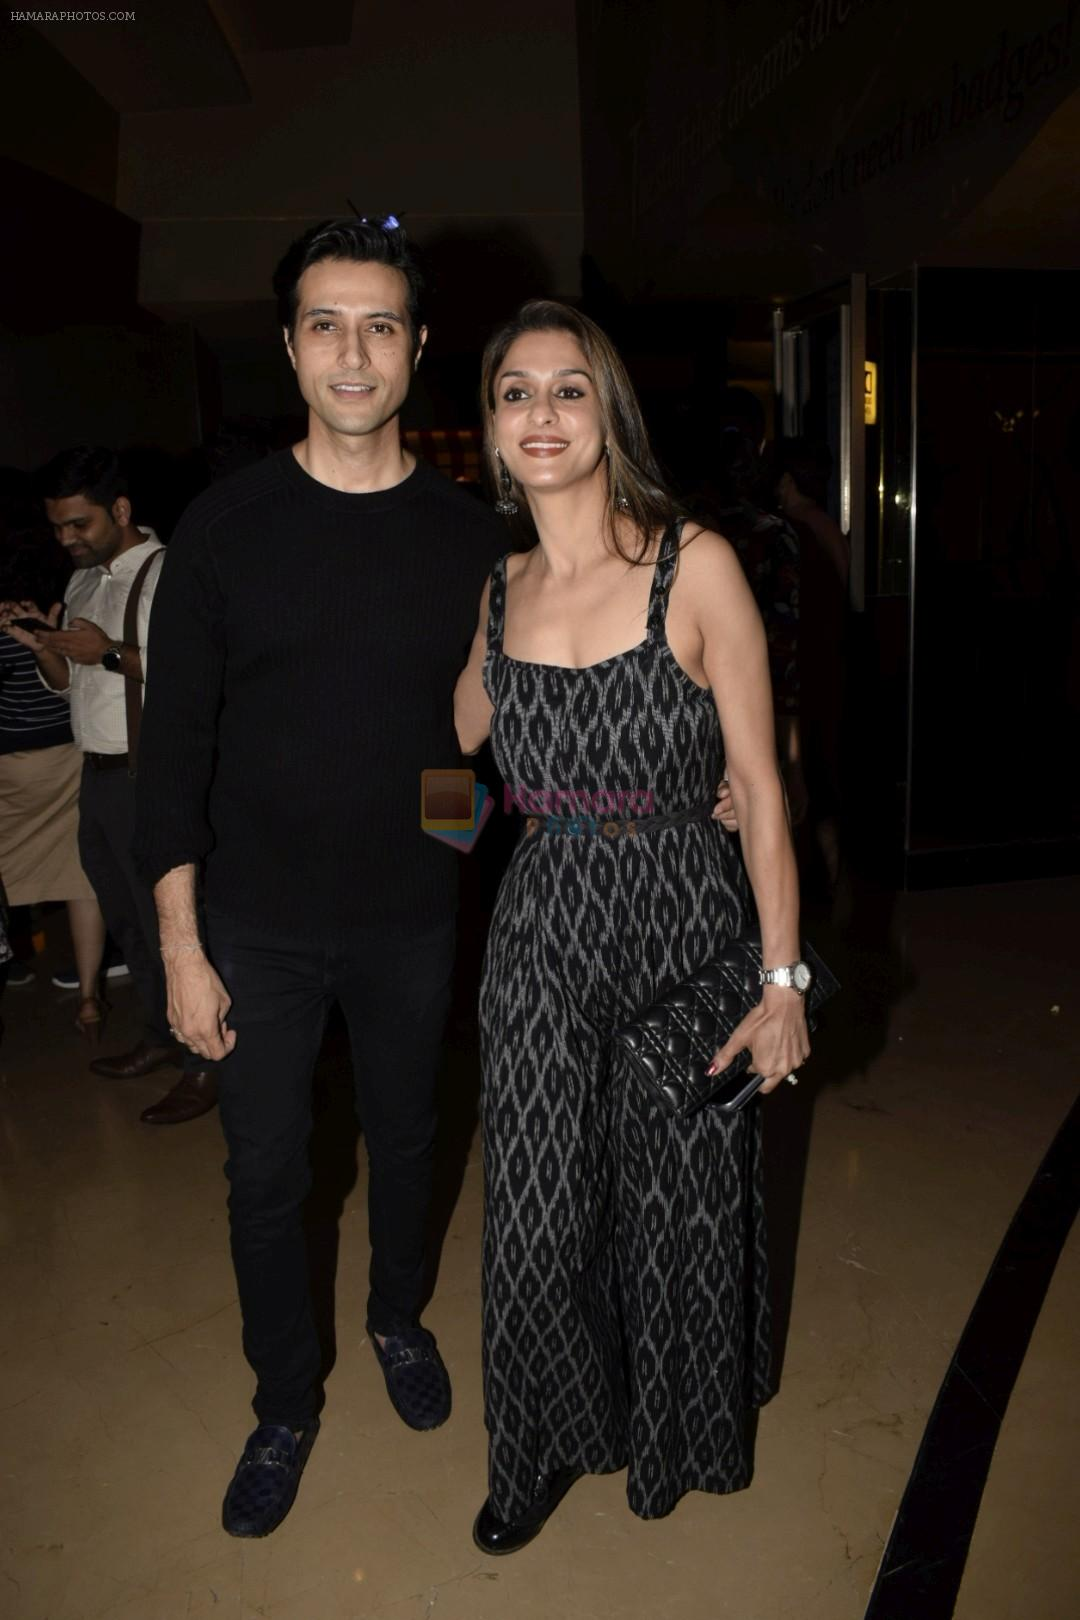 Apurva Agnihotri, Shilpa Sakhlani at the Screening of TVF's web series Yeh Meri Family in pvr juhu on 12th July 2018